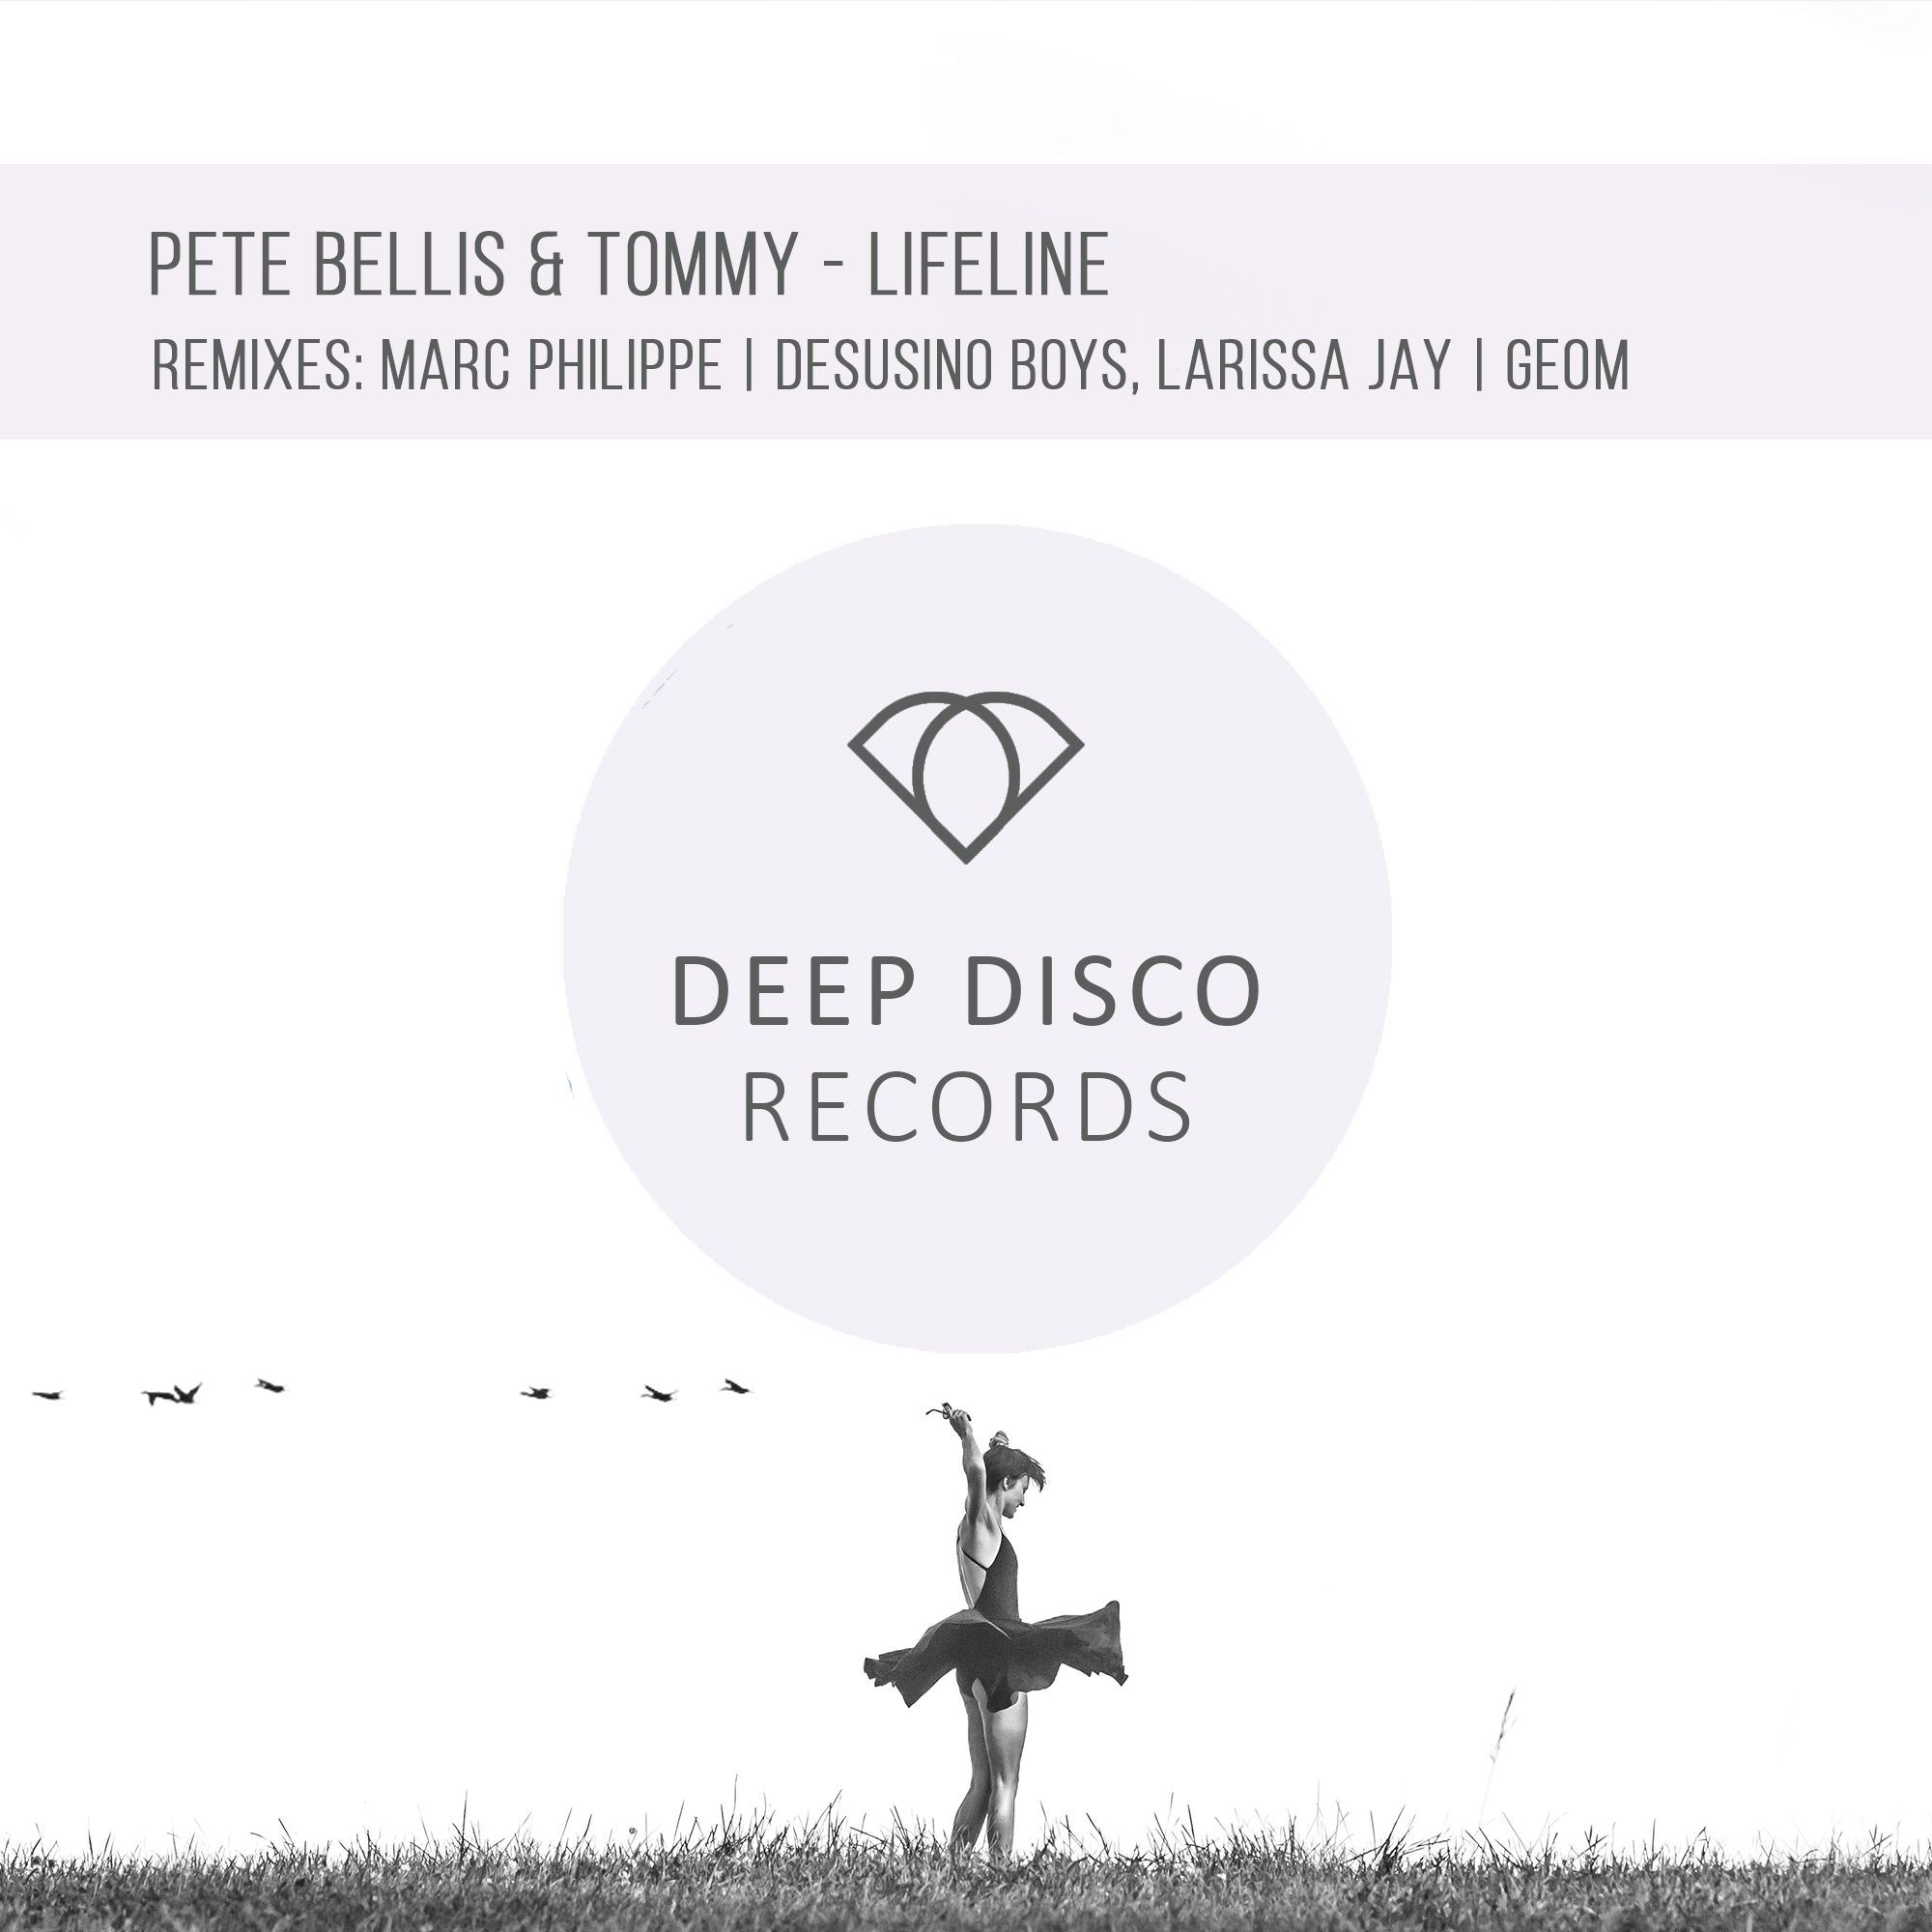 Pete Bellis & Tommy - Lifeline